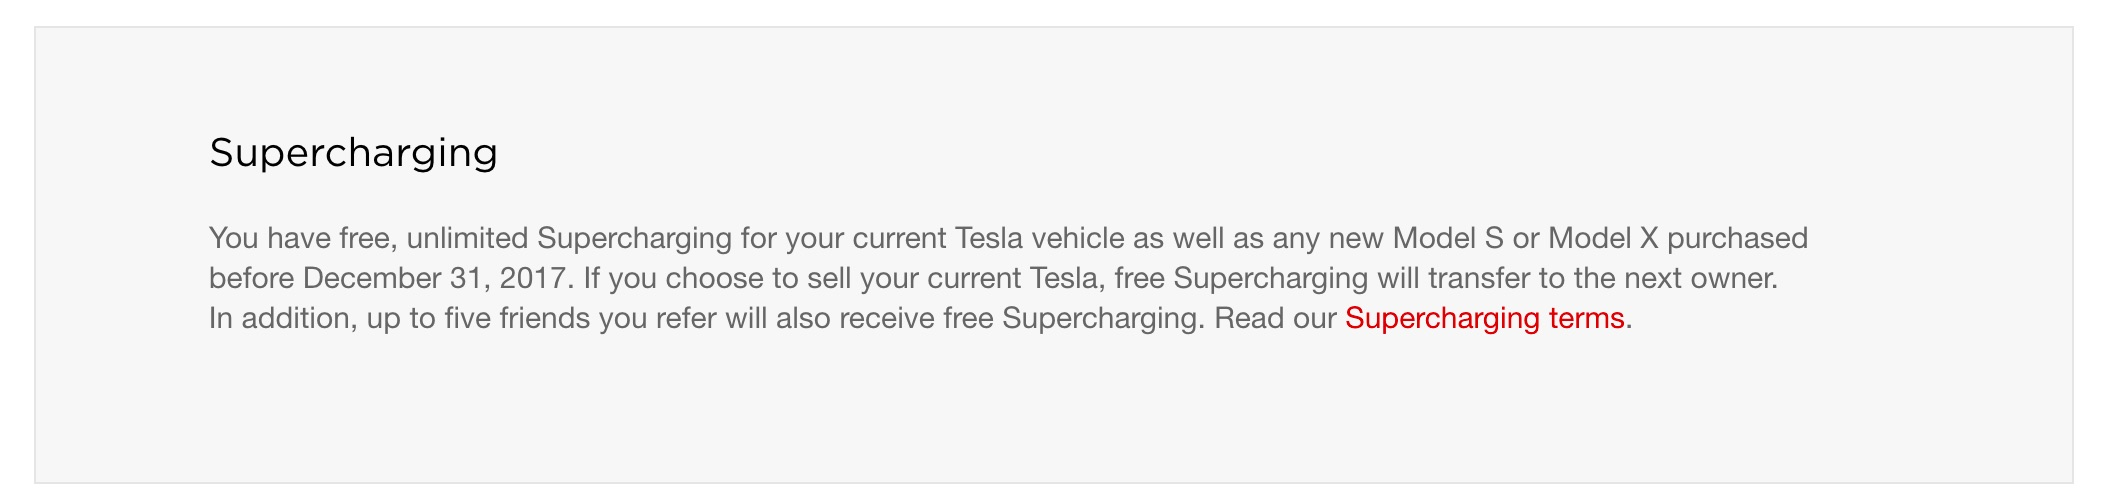 tesla-free-unlimited-supercharging-terms-06162017